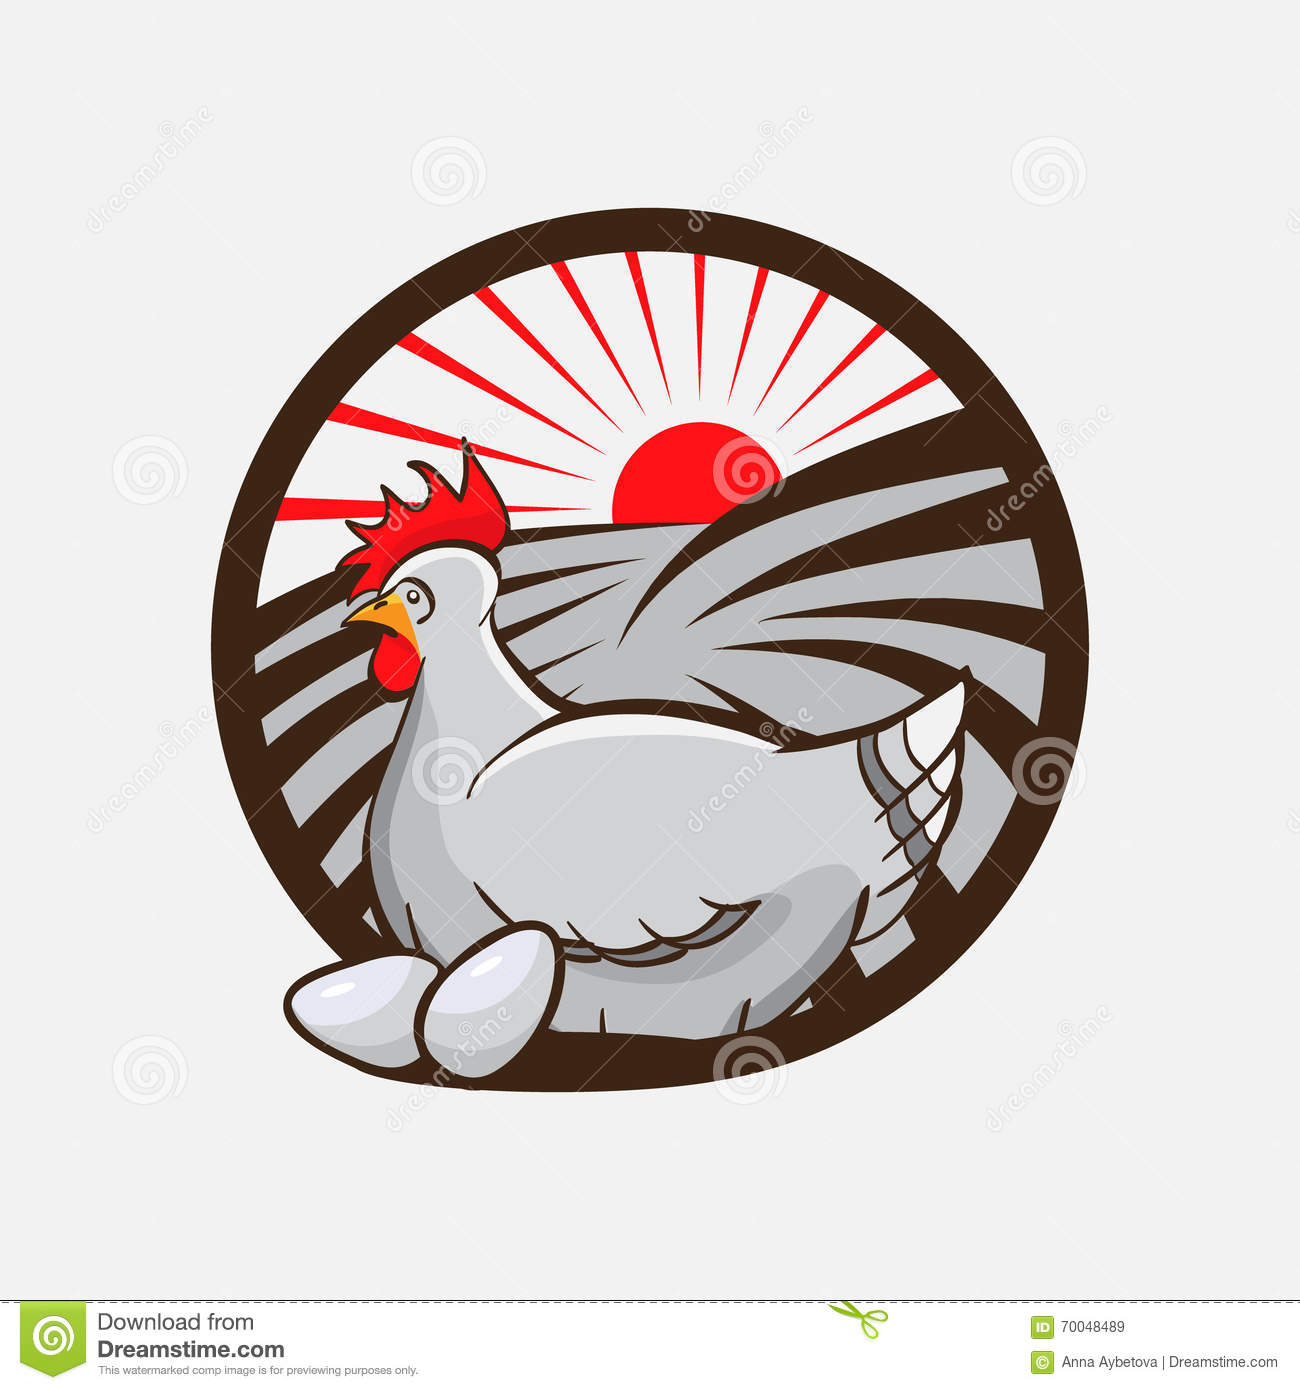 Chicken Farm Emblem Vector Illustration Stock Vector